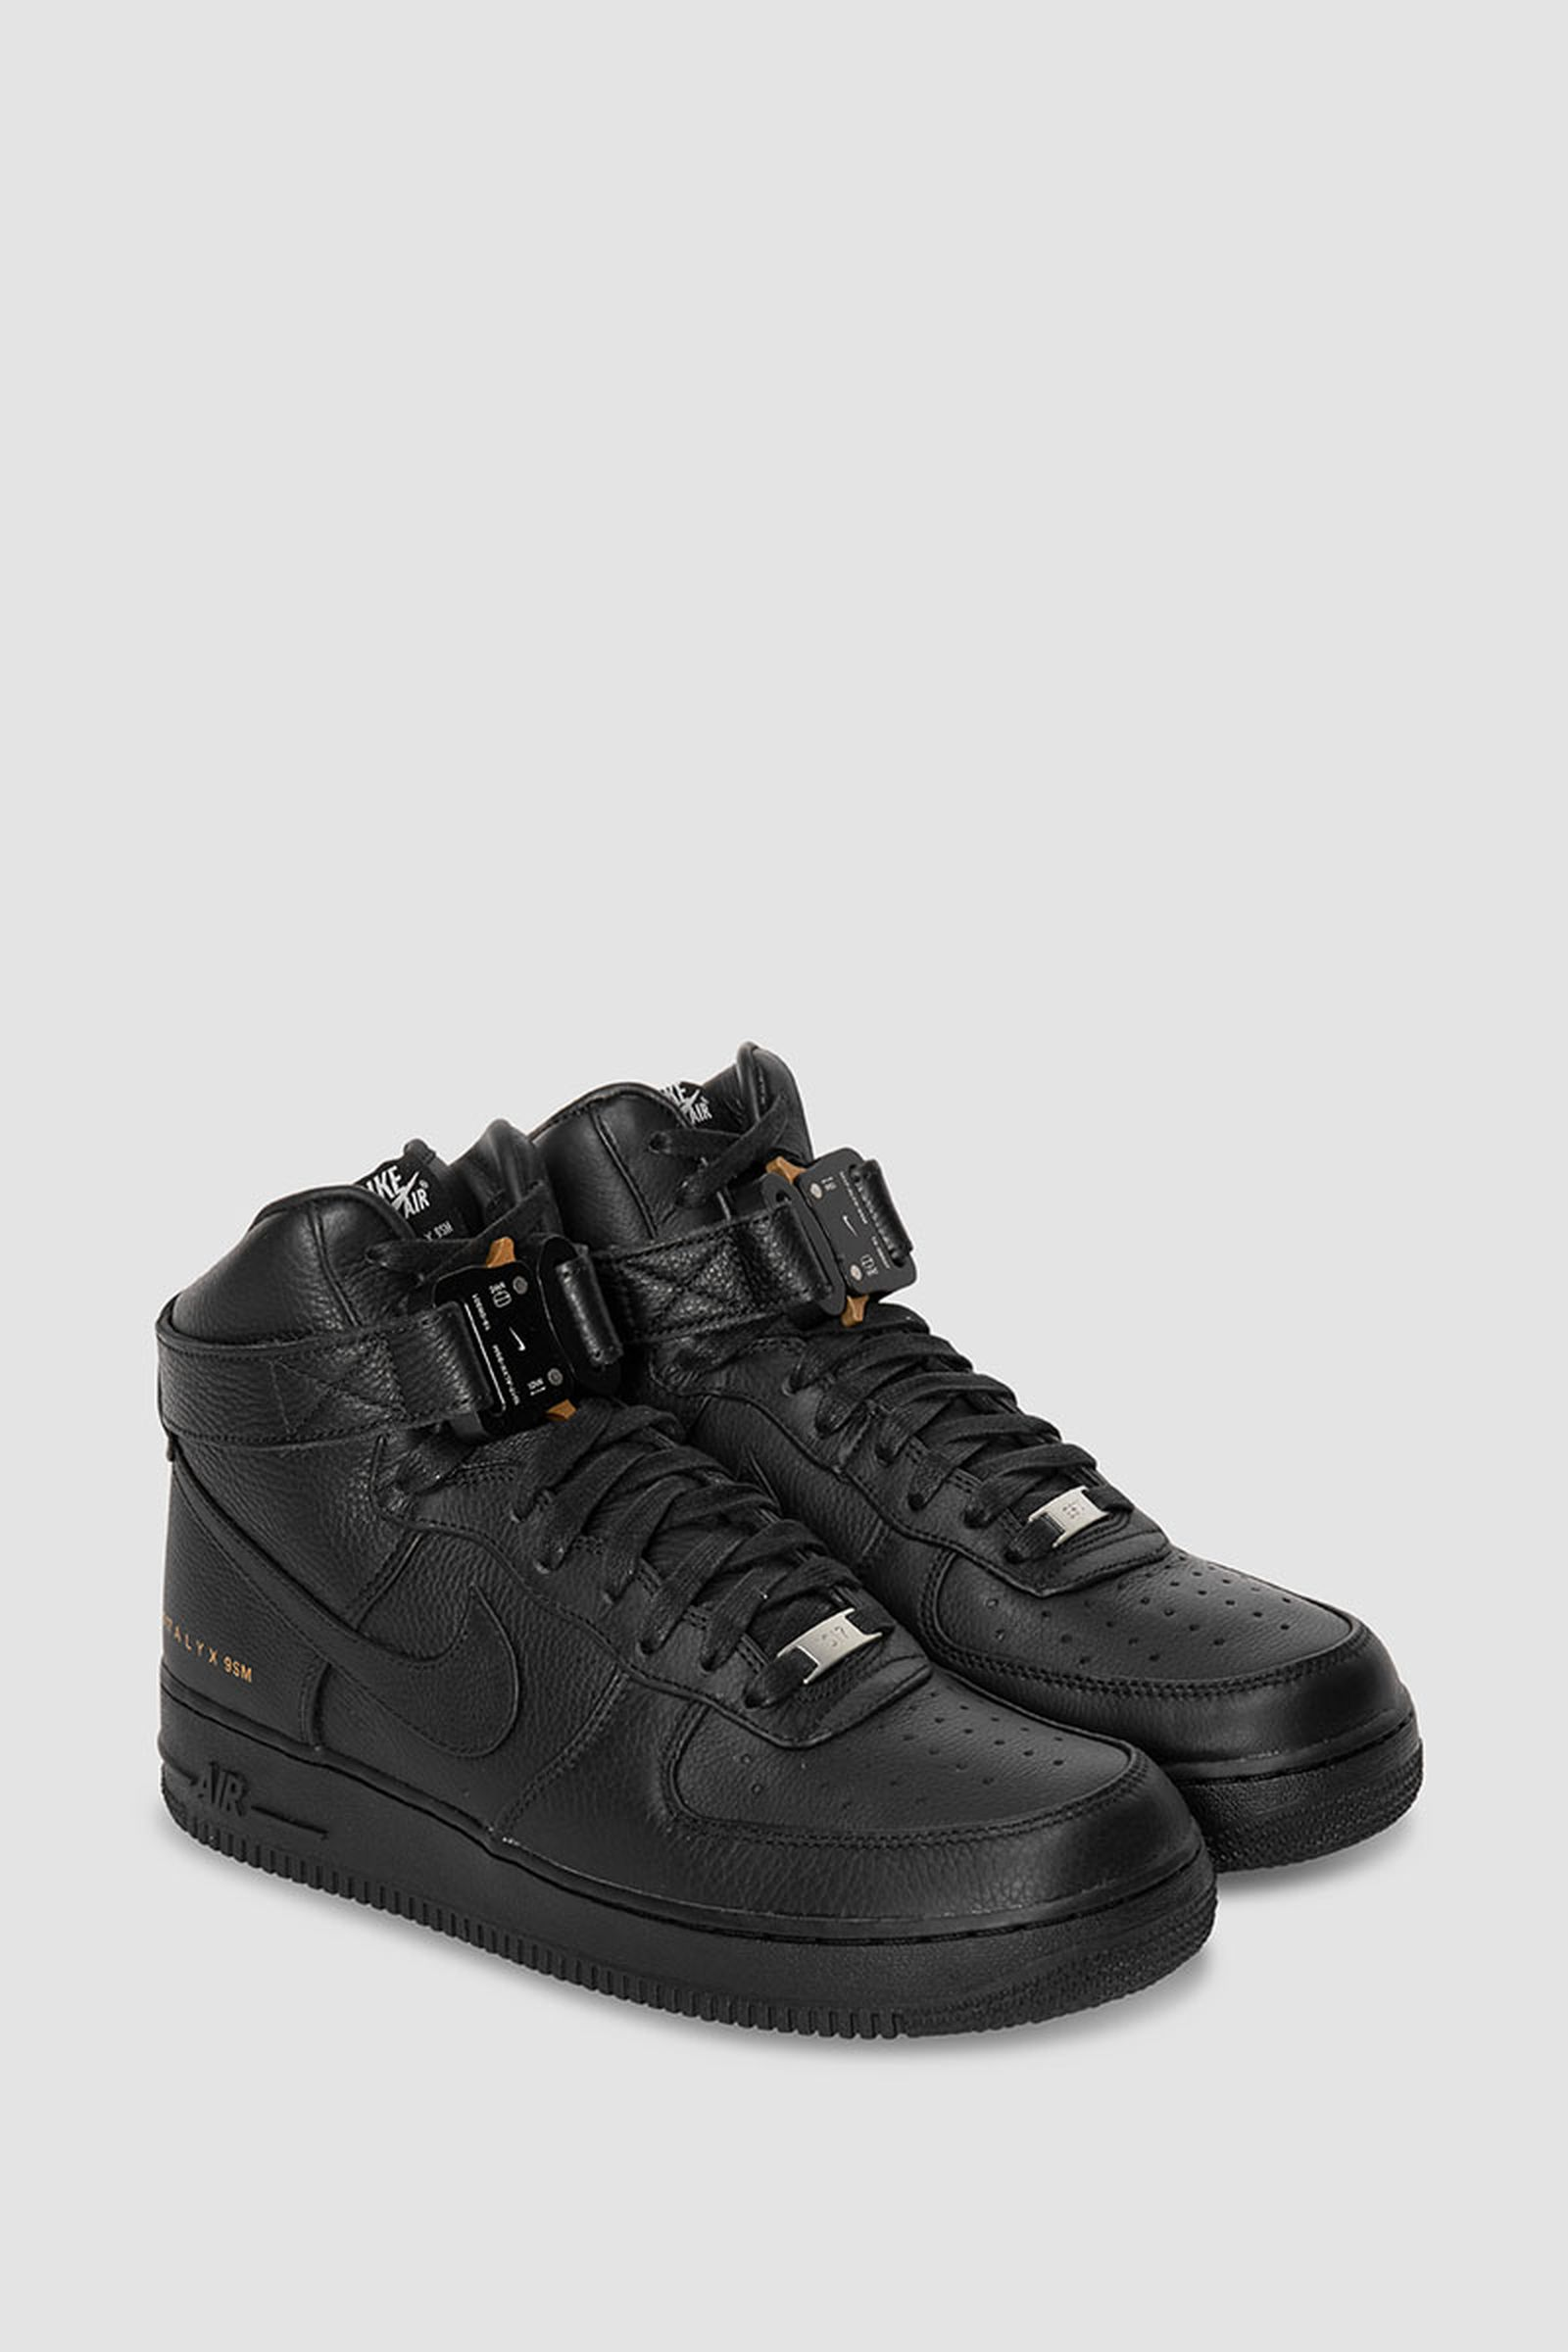 alyx-nike-air-force-1-high-release-date-price-13